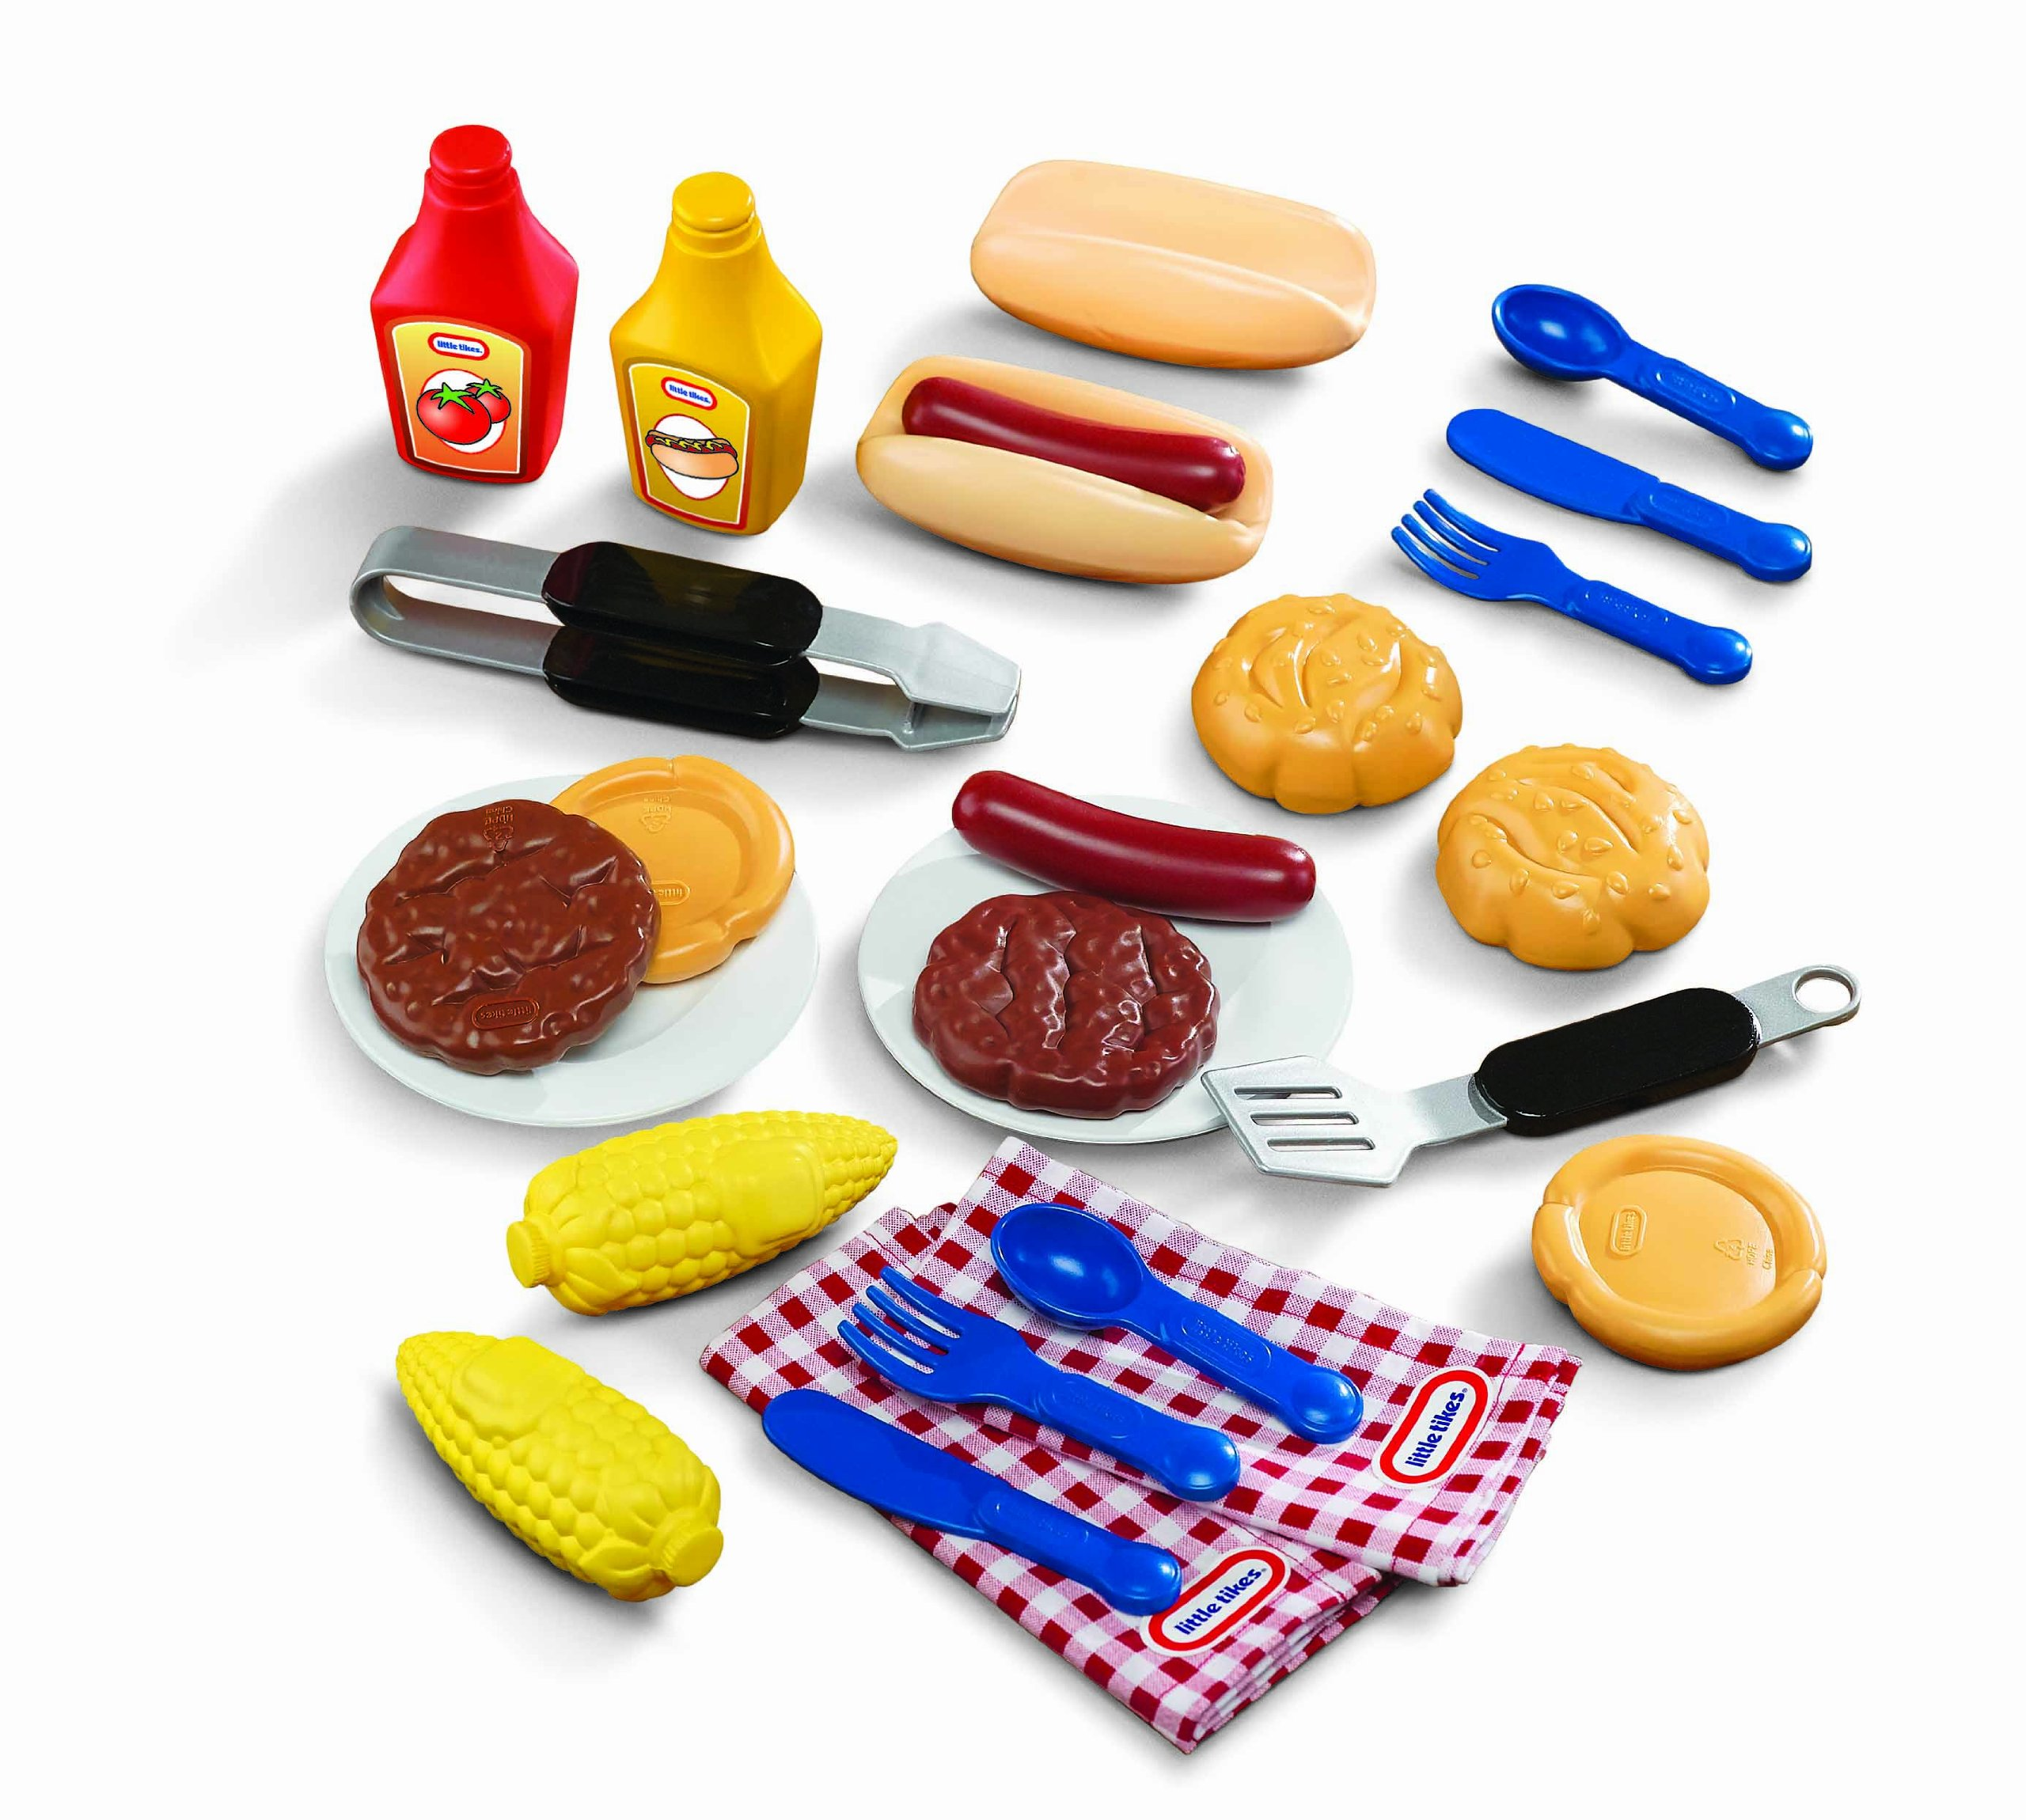 Little Tikes Backyard Barbeque Grillin' Goodies by Little Tikes